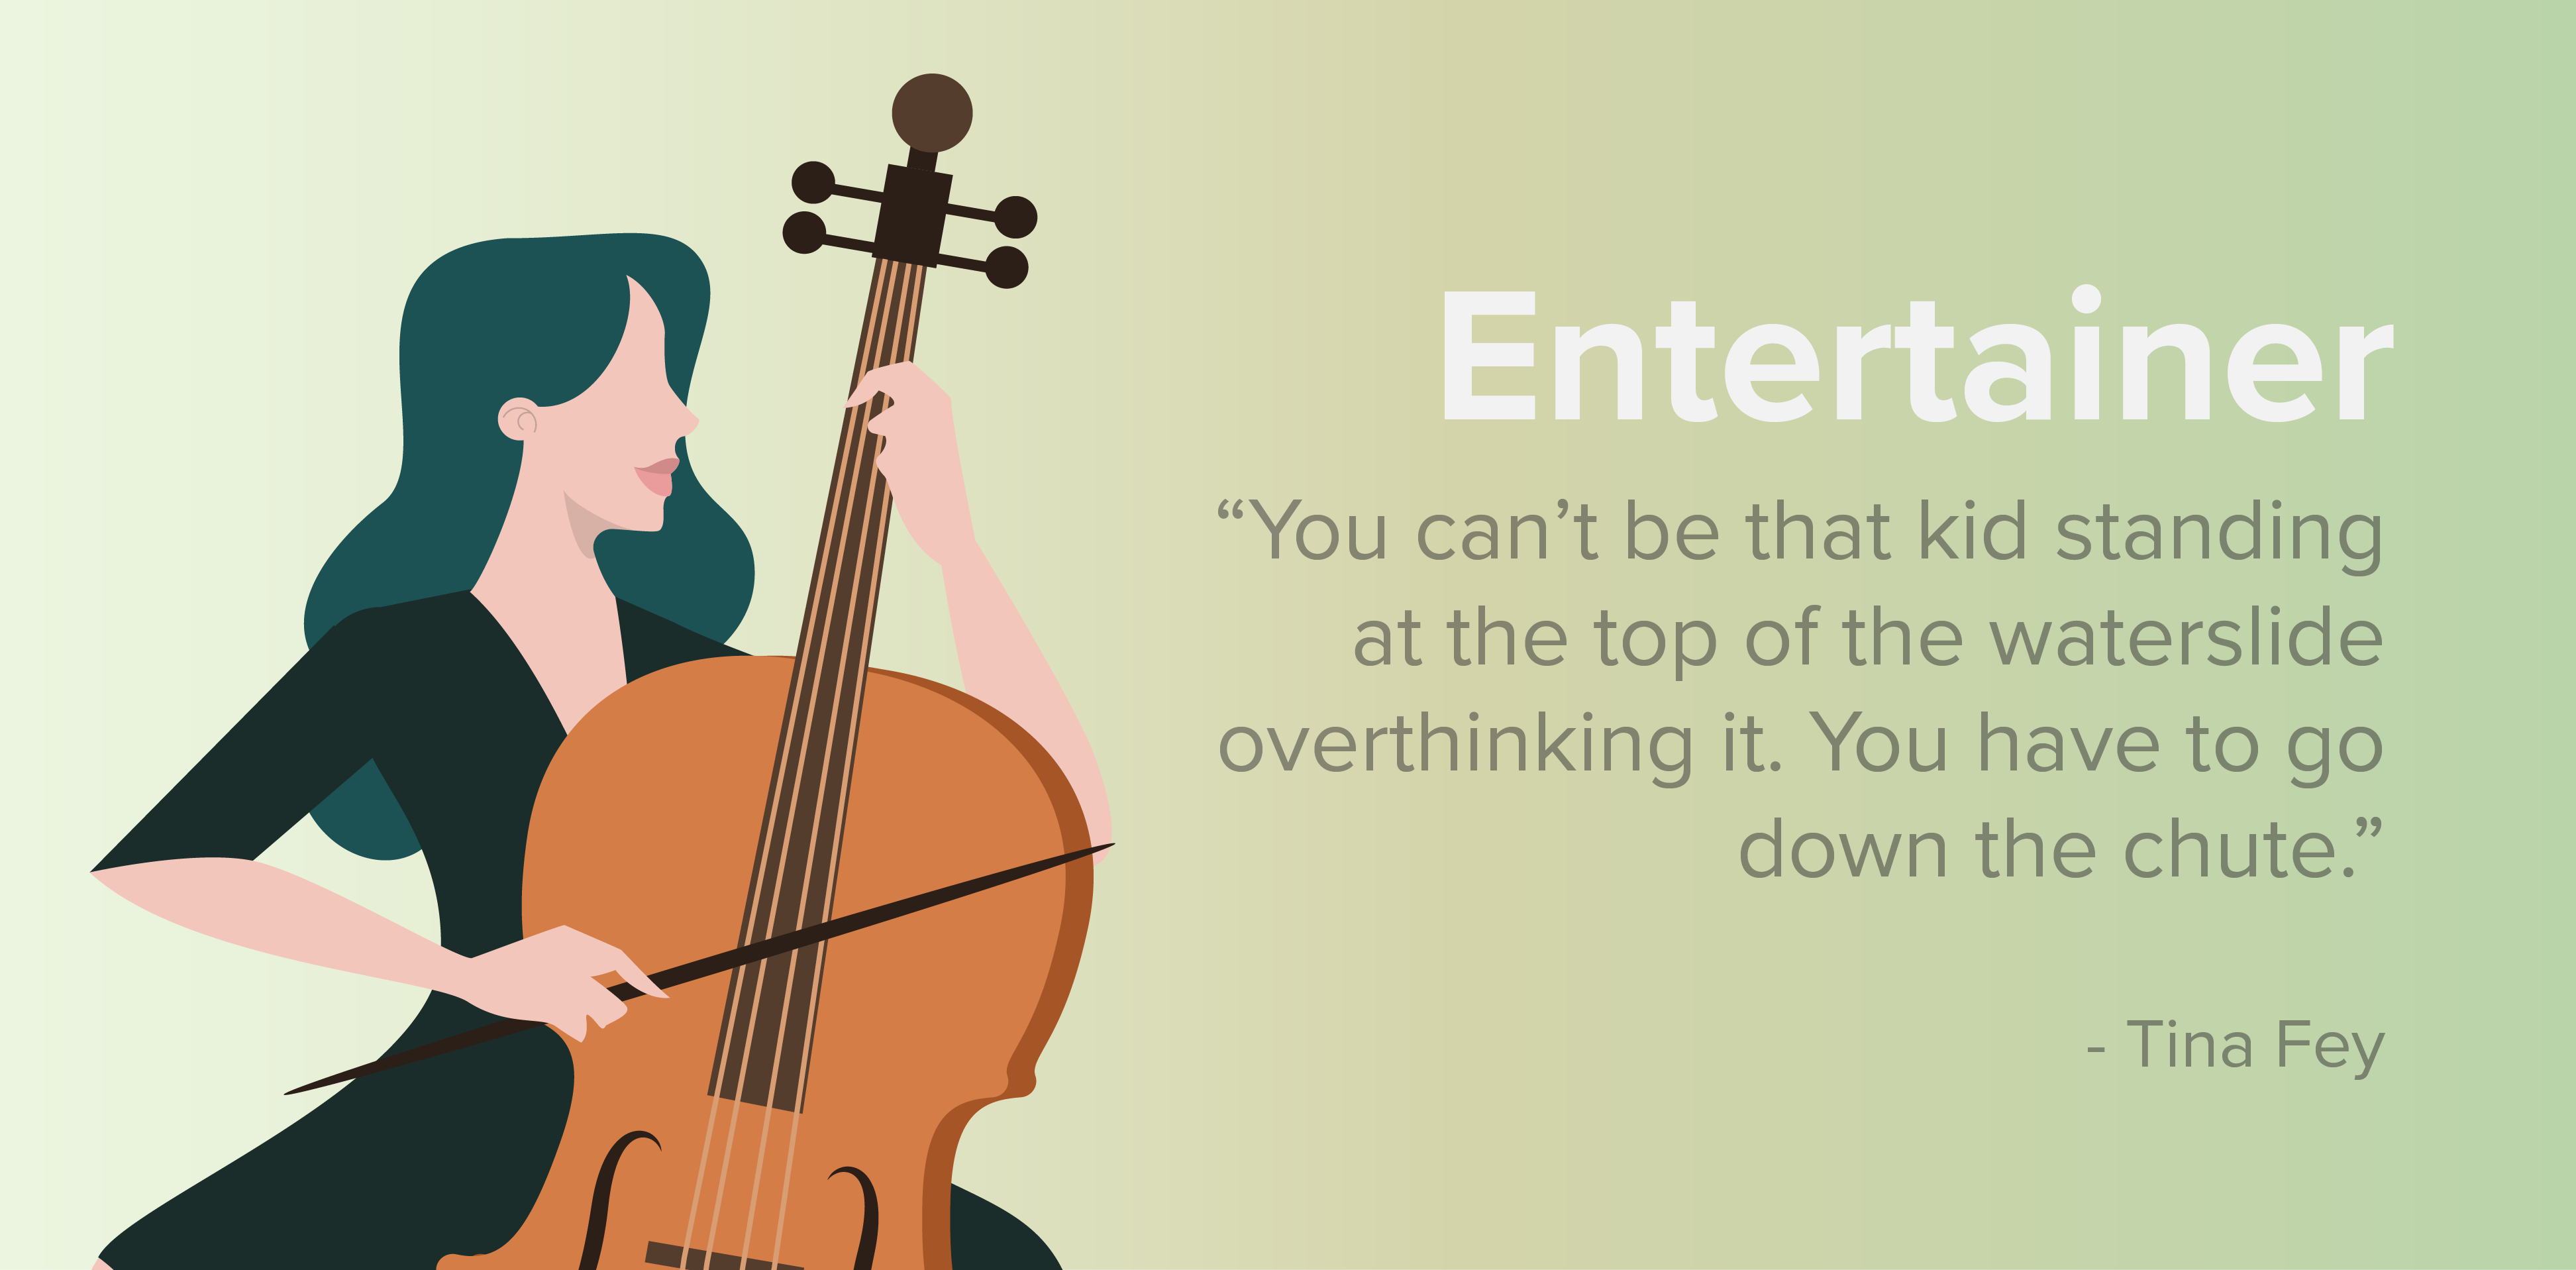 """Entertainer. """"You can't be that kid standing at the top of the waterslide overthinking it. You have to go down the chute."""" -Tina Fey"""